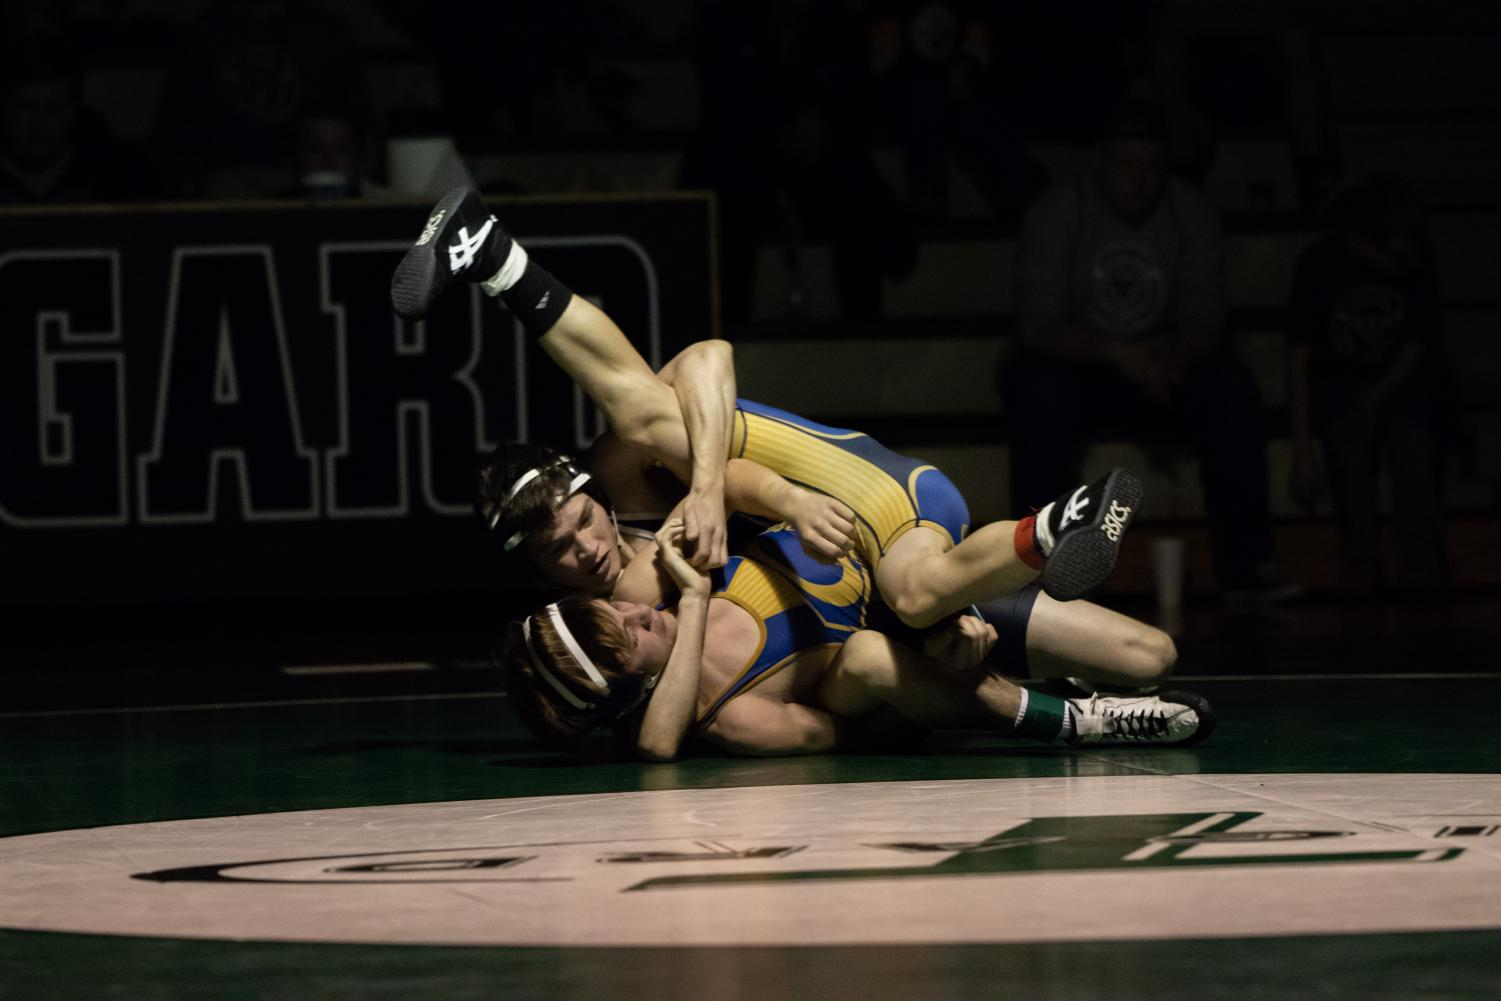 Cameron O'Connor takes on Ty Ewers of Canby. O'Connor won the match by techfall and helped Tigard win the dual meet 45-28.